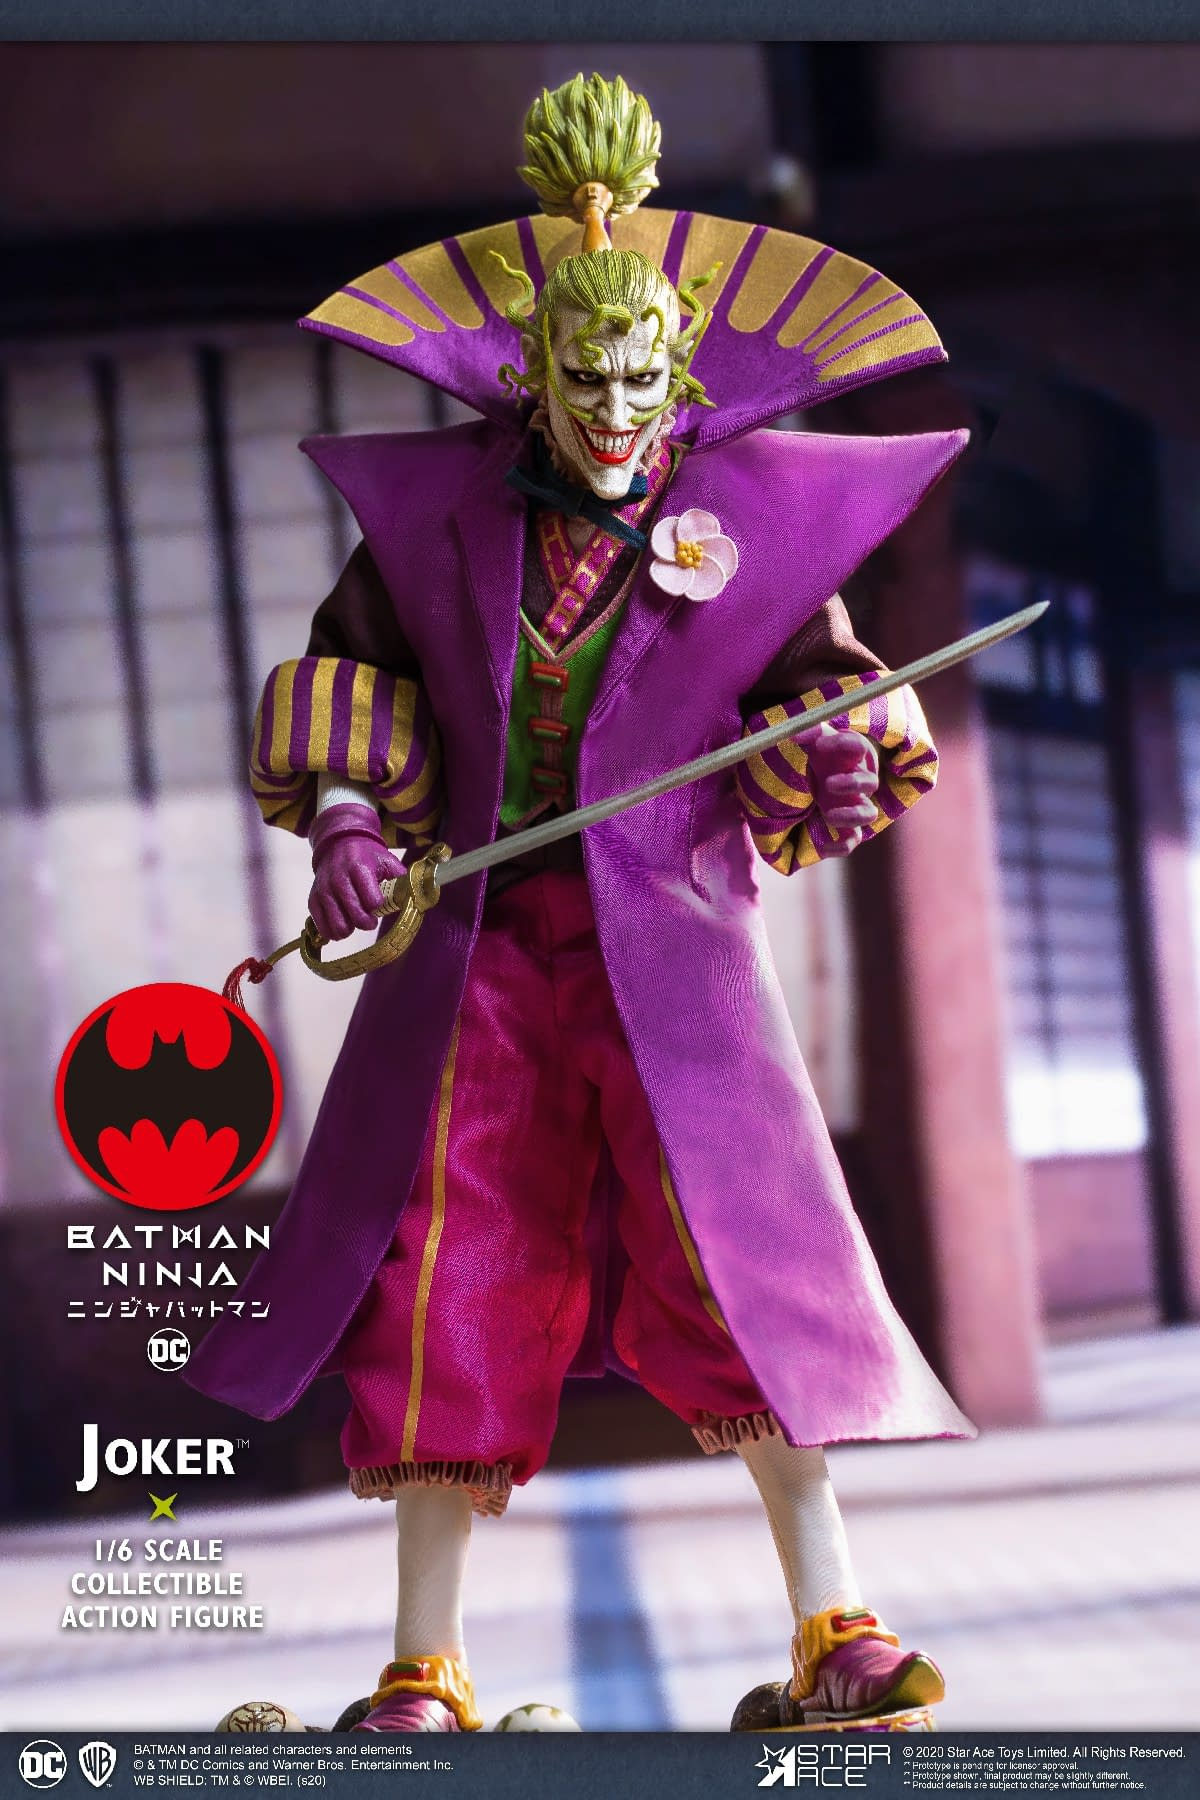 Lord Joker From Batman Ninja Gets A Figure With Star Ace Toys